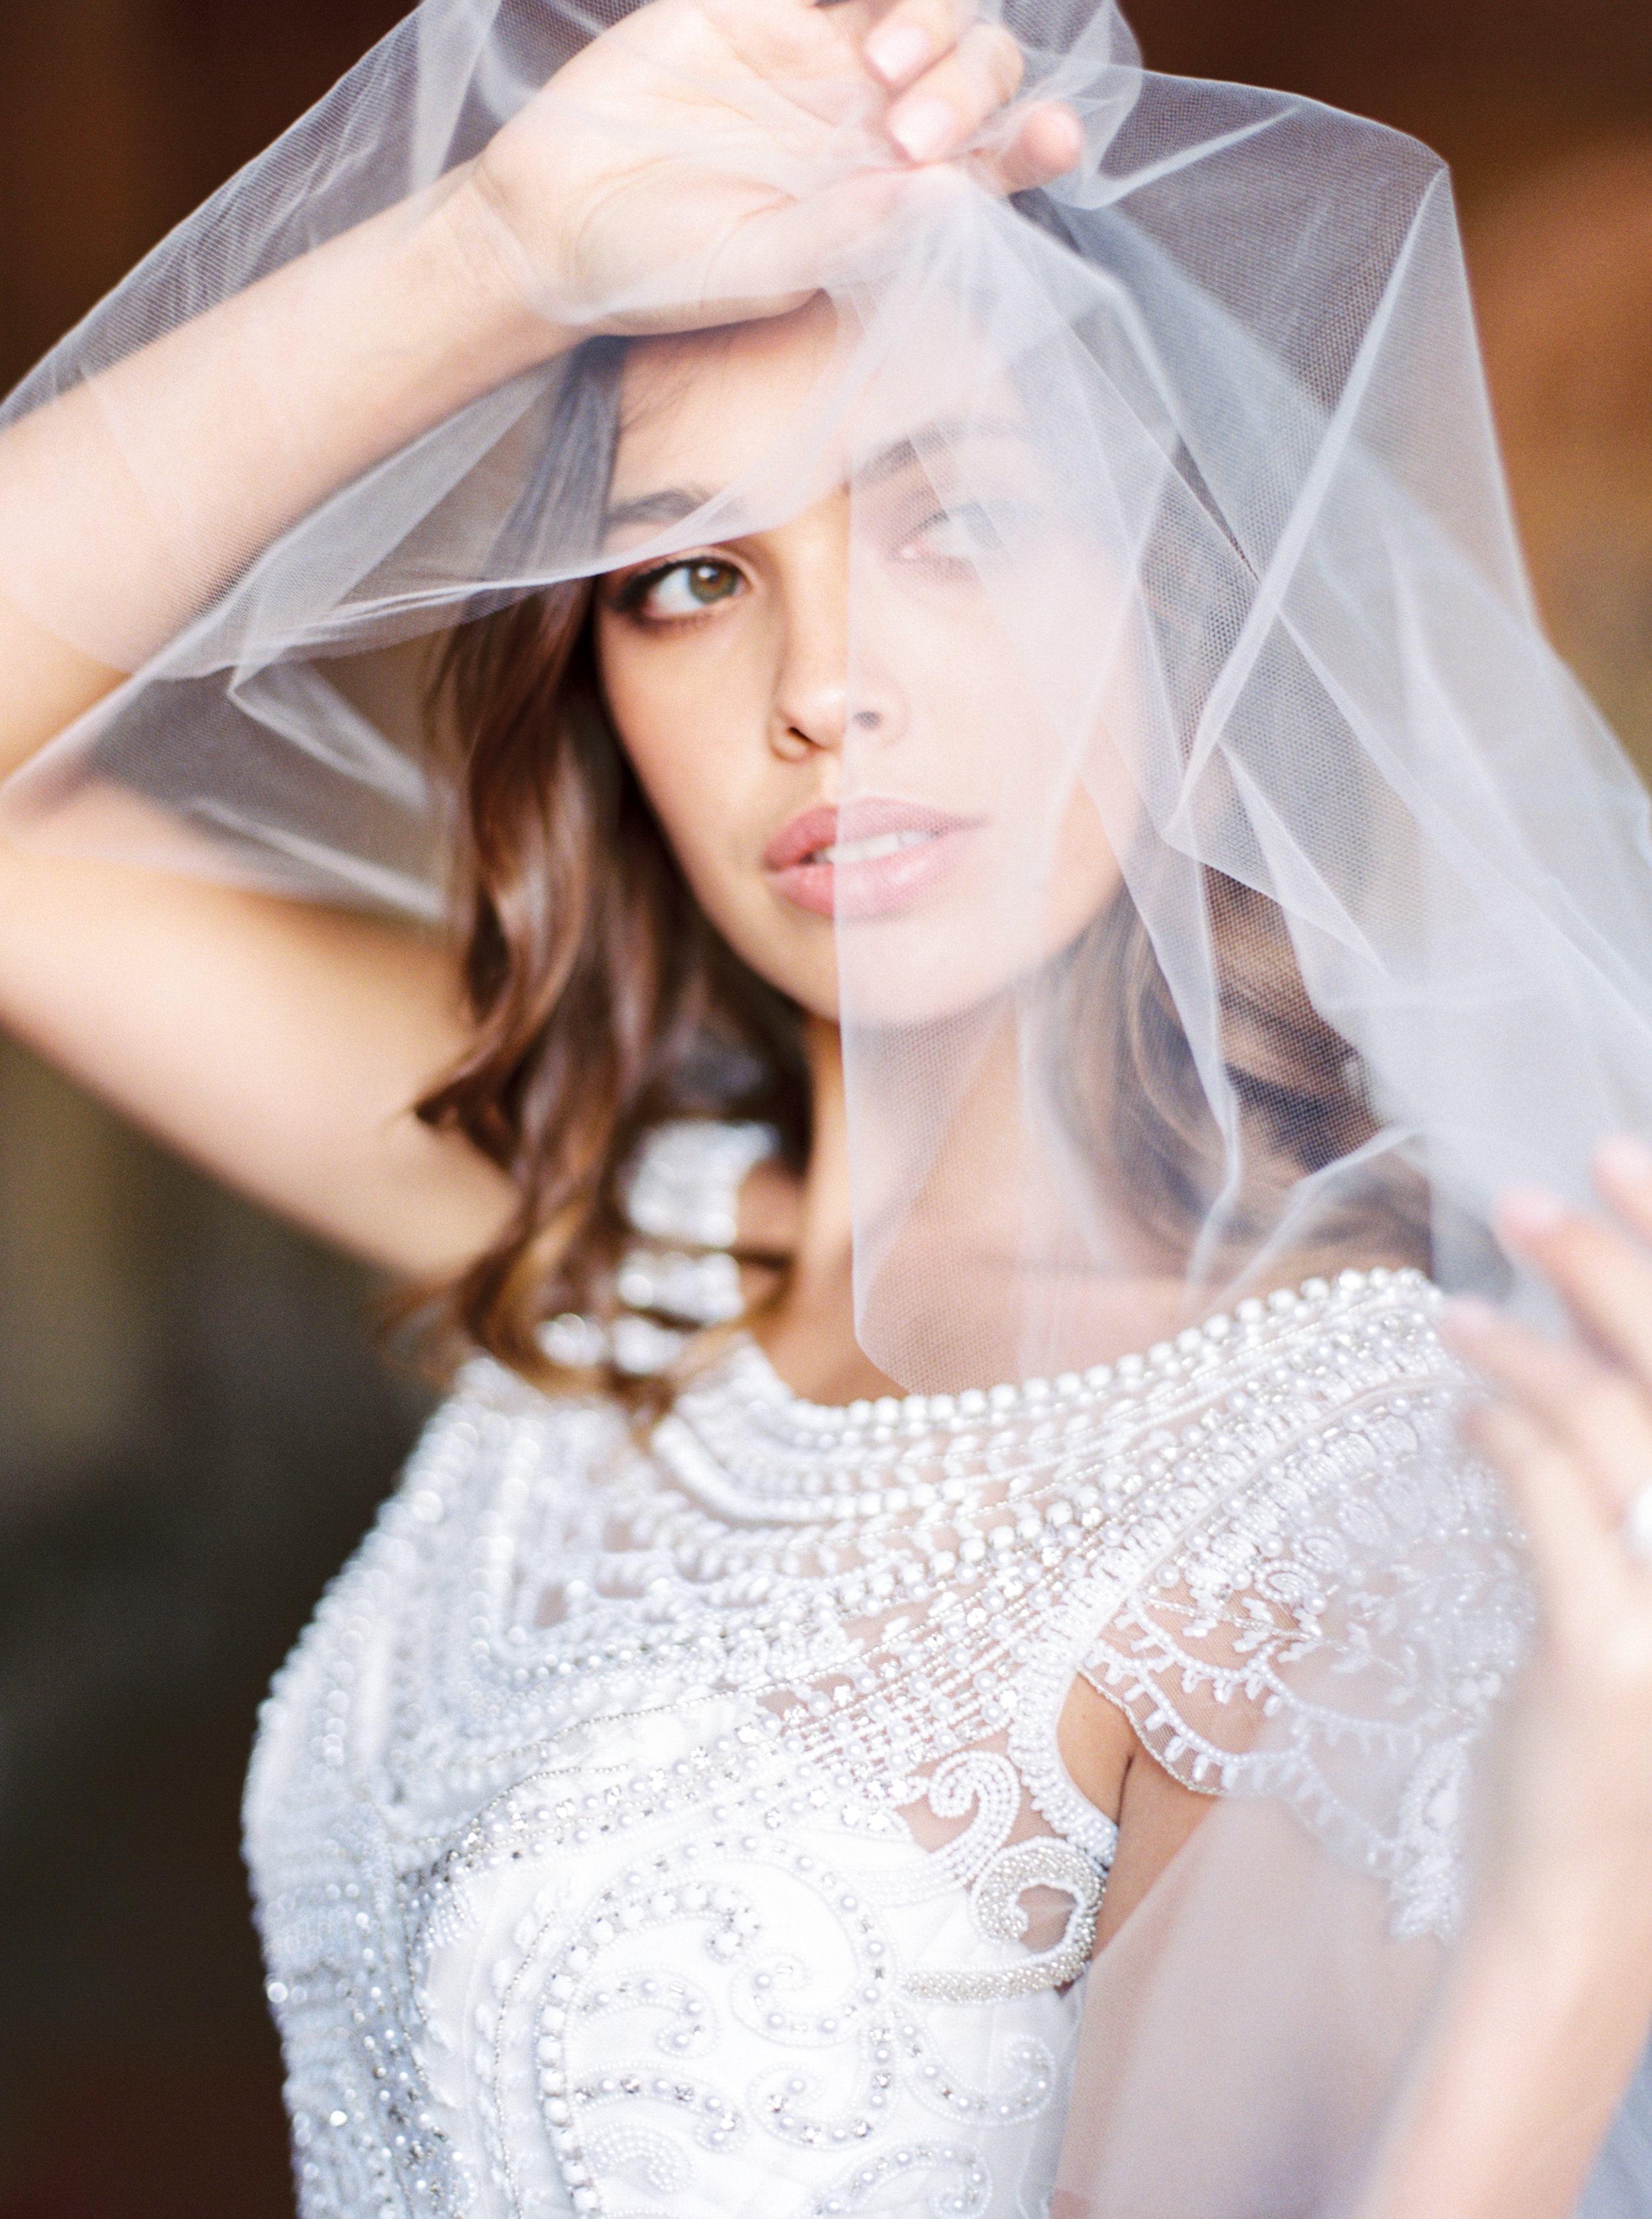 3. Yes, try the veil! - We might be biased, but really, when else will you ever get to wear such a beautifully romantic accessory!Whether or not you decide to wear the blusher over your face (we have options with or without), there is something about adding this most classic of bridal touches that always brings a tear to your bridesmaids' eyes!Our Armadale Boutique Manager, Renee, agrees: